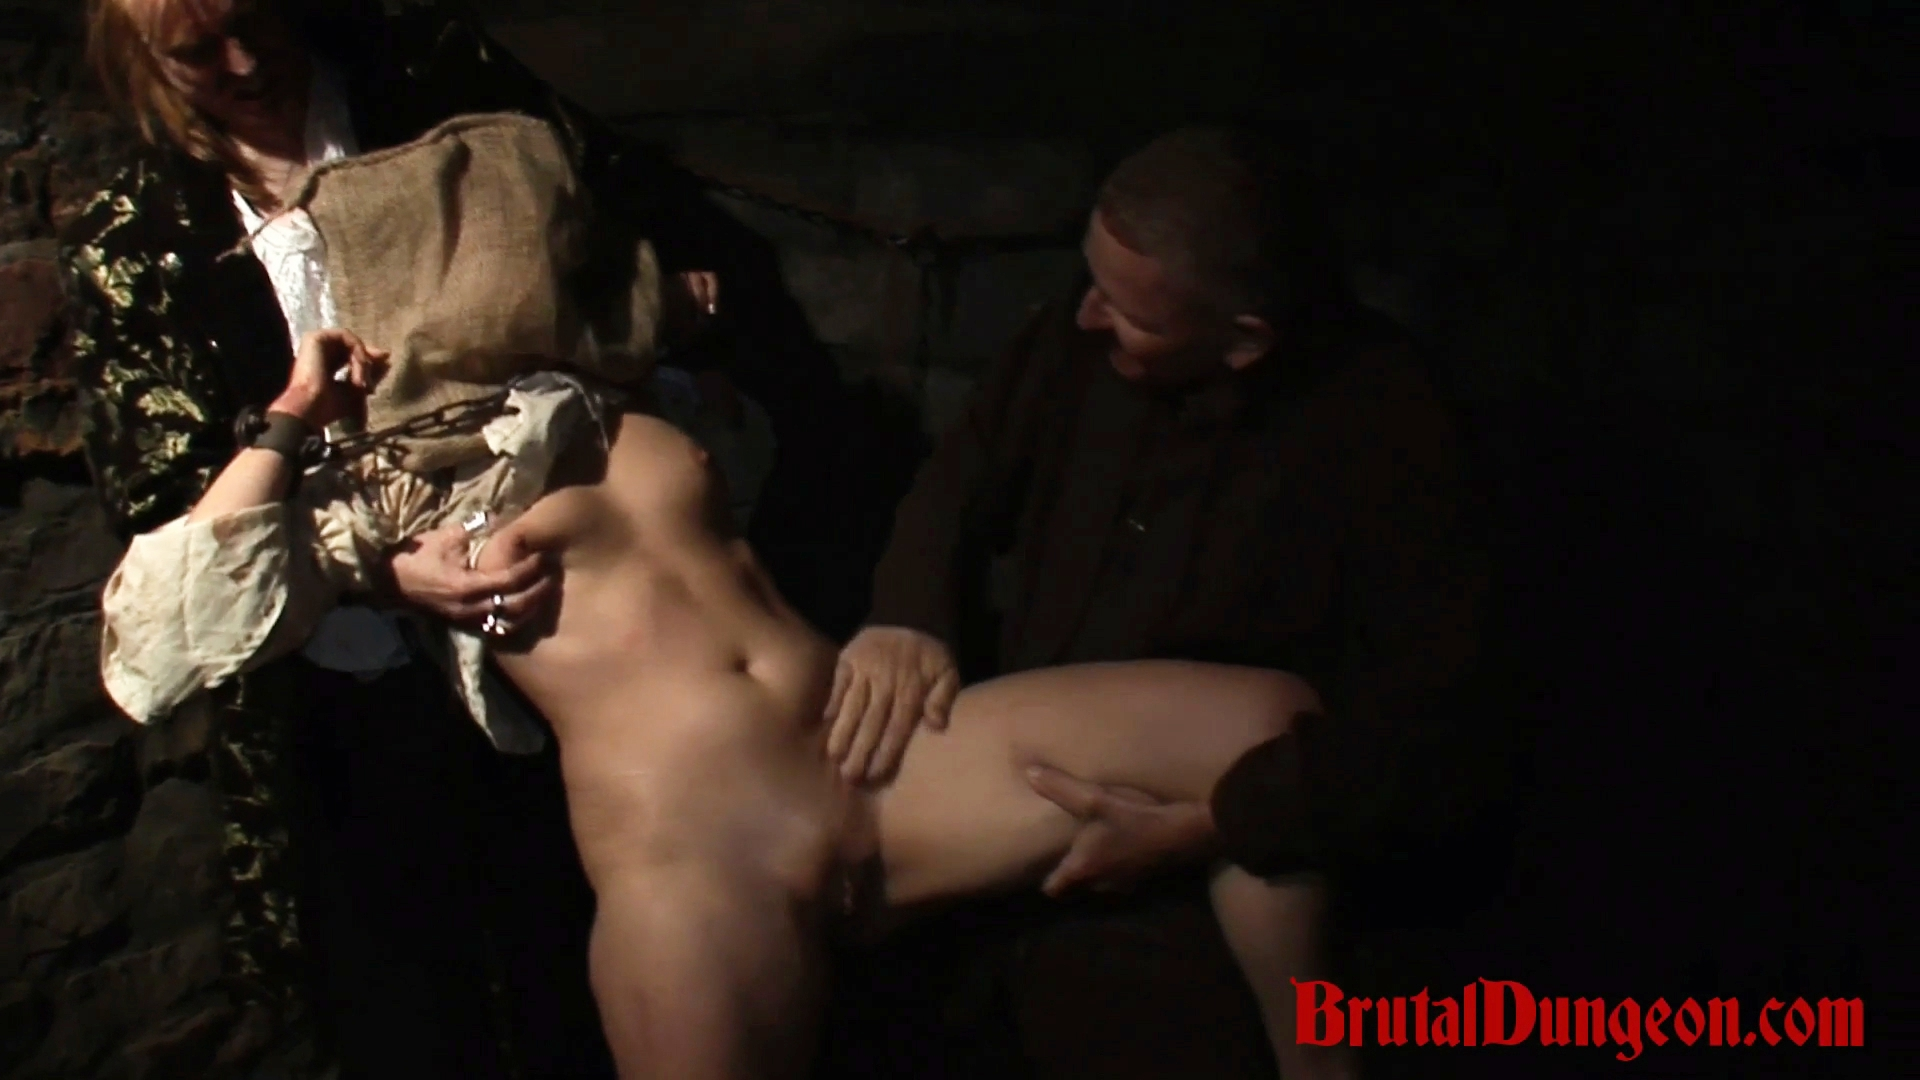 Blonde amalia is for bdsm gang bang. In our dungeon, a young blonde wench is left without any water. For a few drops of water she would do anything, even she will have to stand any kind of mistreatment to satisfy her thirst. She must endure imprisonment, bondage, domination, BDSM fun, gang bang, blindfold, spanking, fingering, tit and pussy torment.